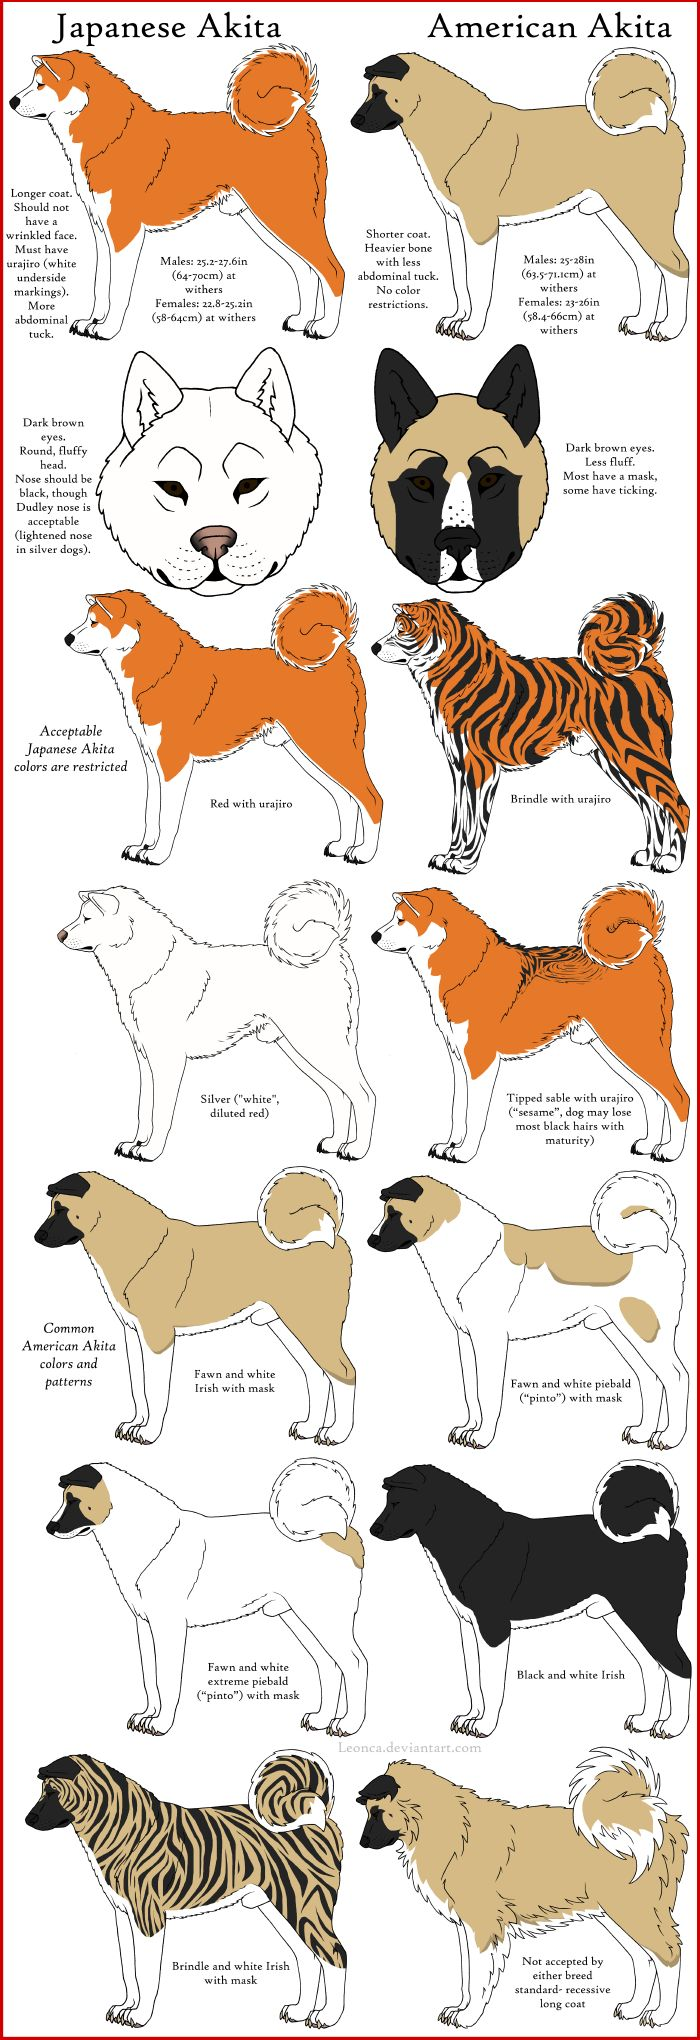 Akita Breeds Comparison by Leonca.deviantart.com on @deviantART